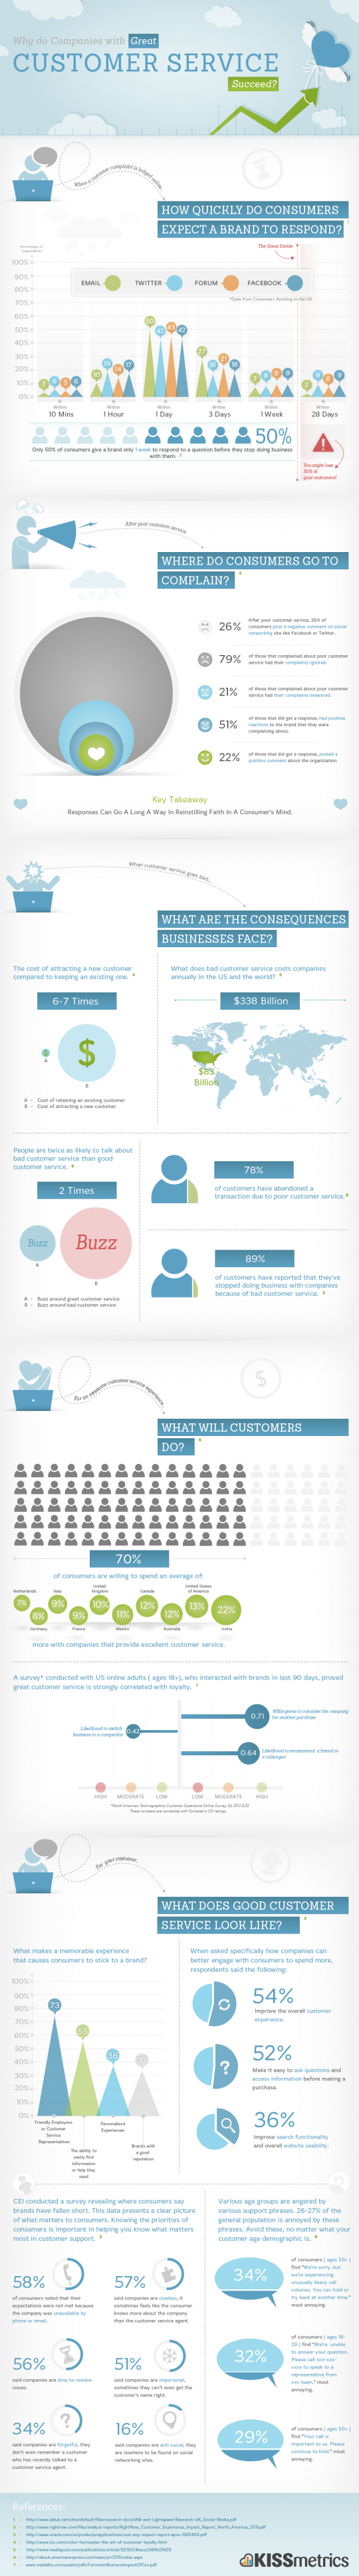 Why do Companies with Great Customer Service Succeed?